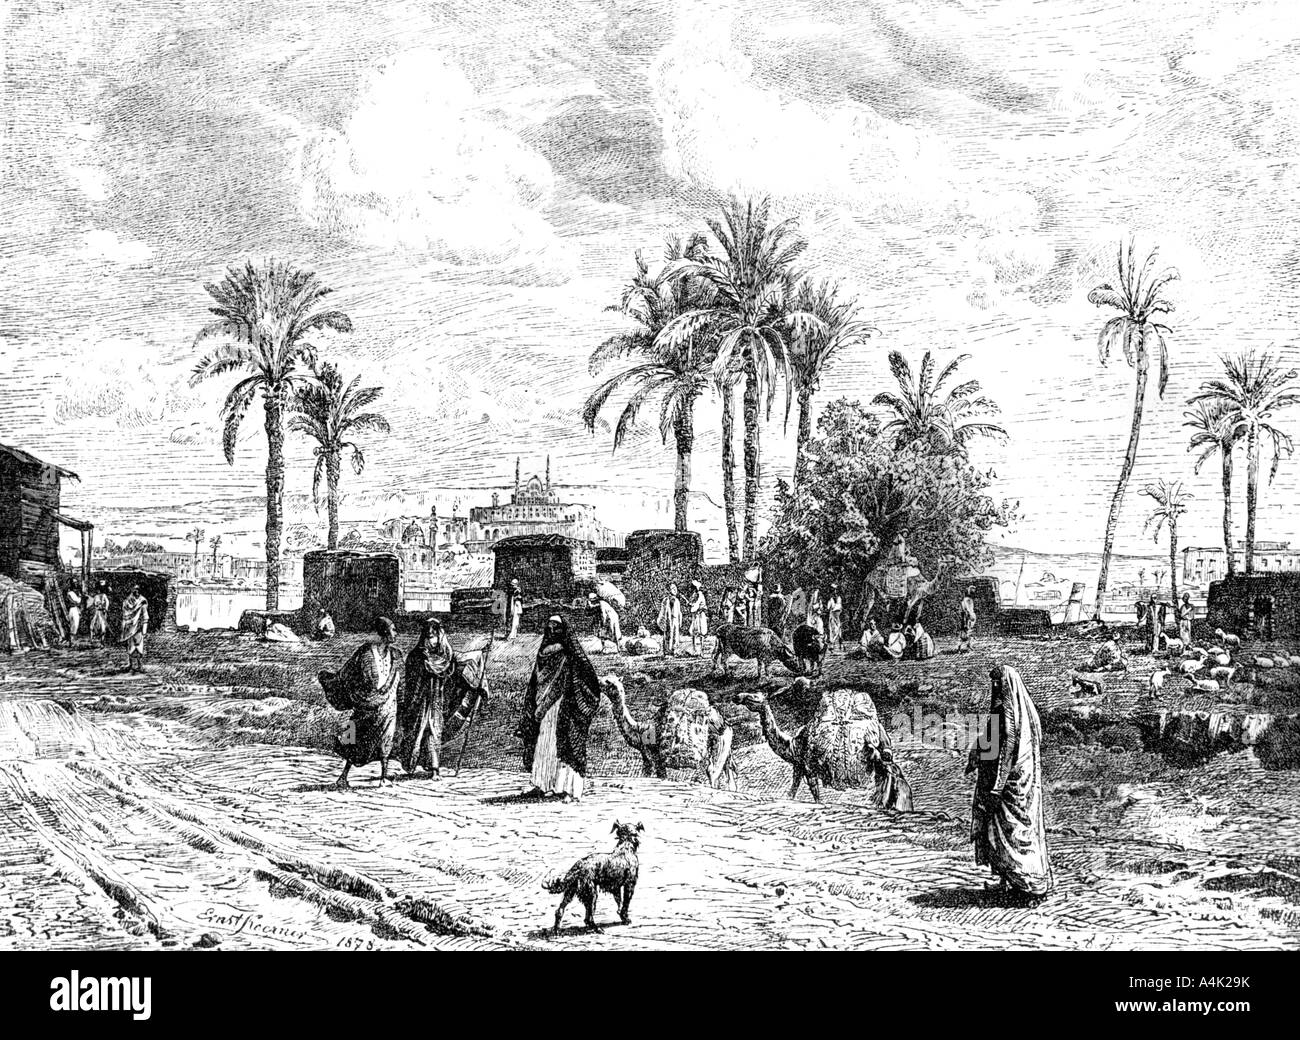 'Cairo seen of left bank of the Nile', 1881. Artist: Unknown Stock Photo